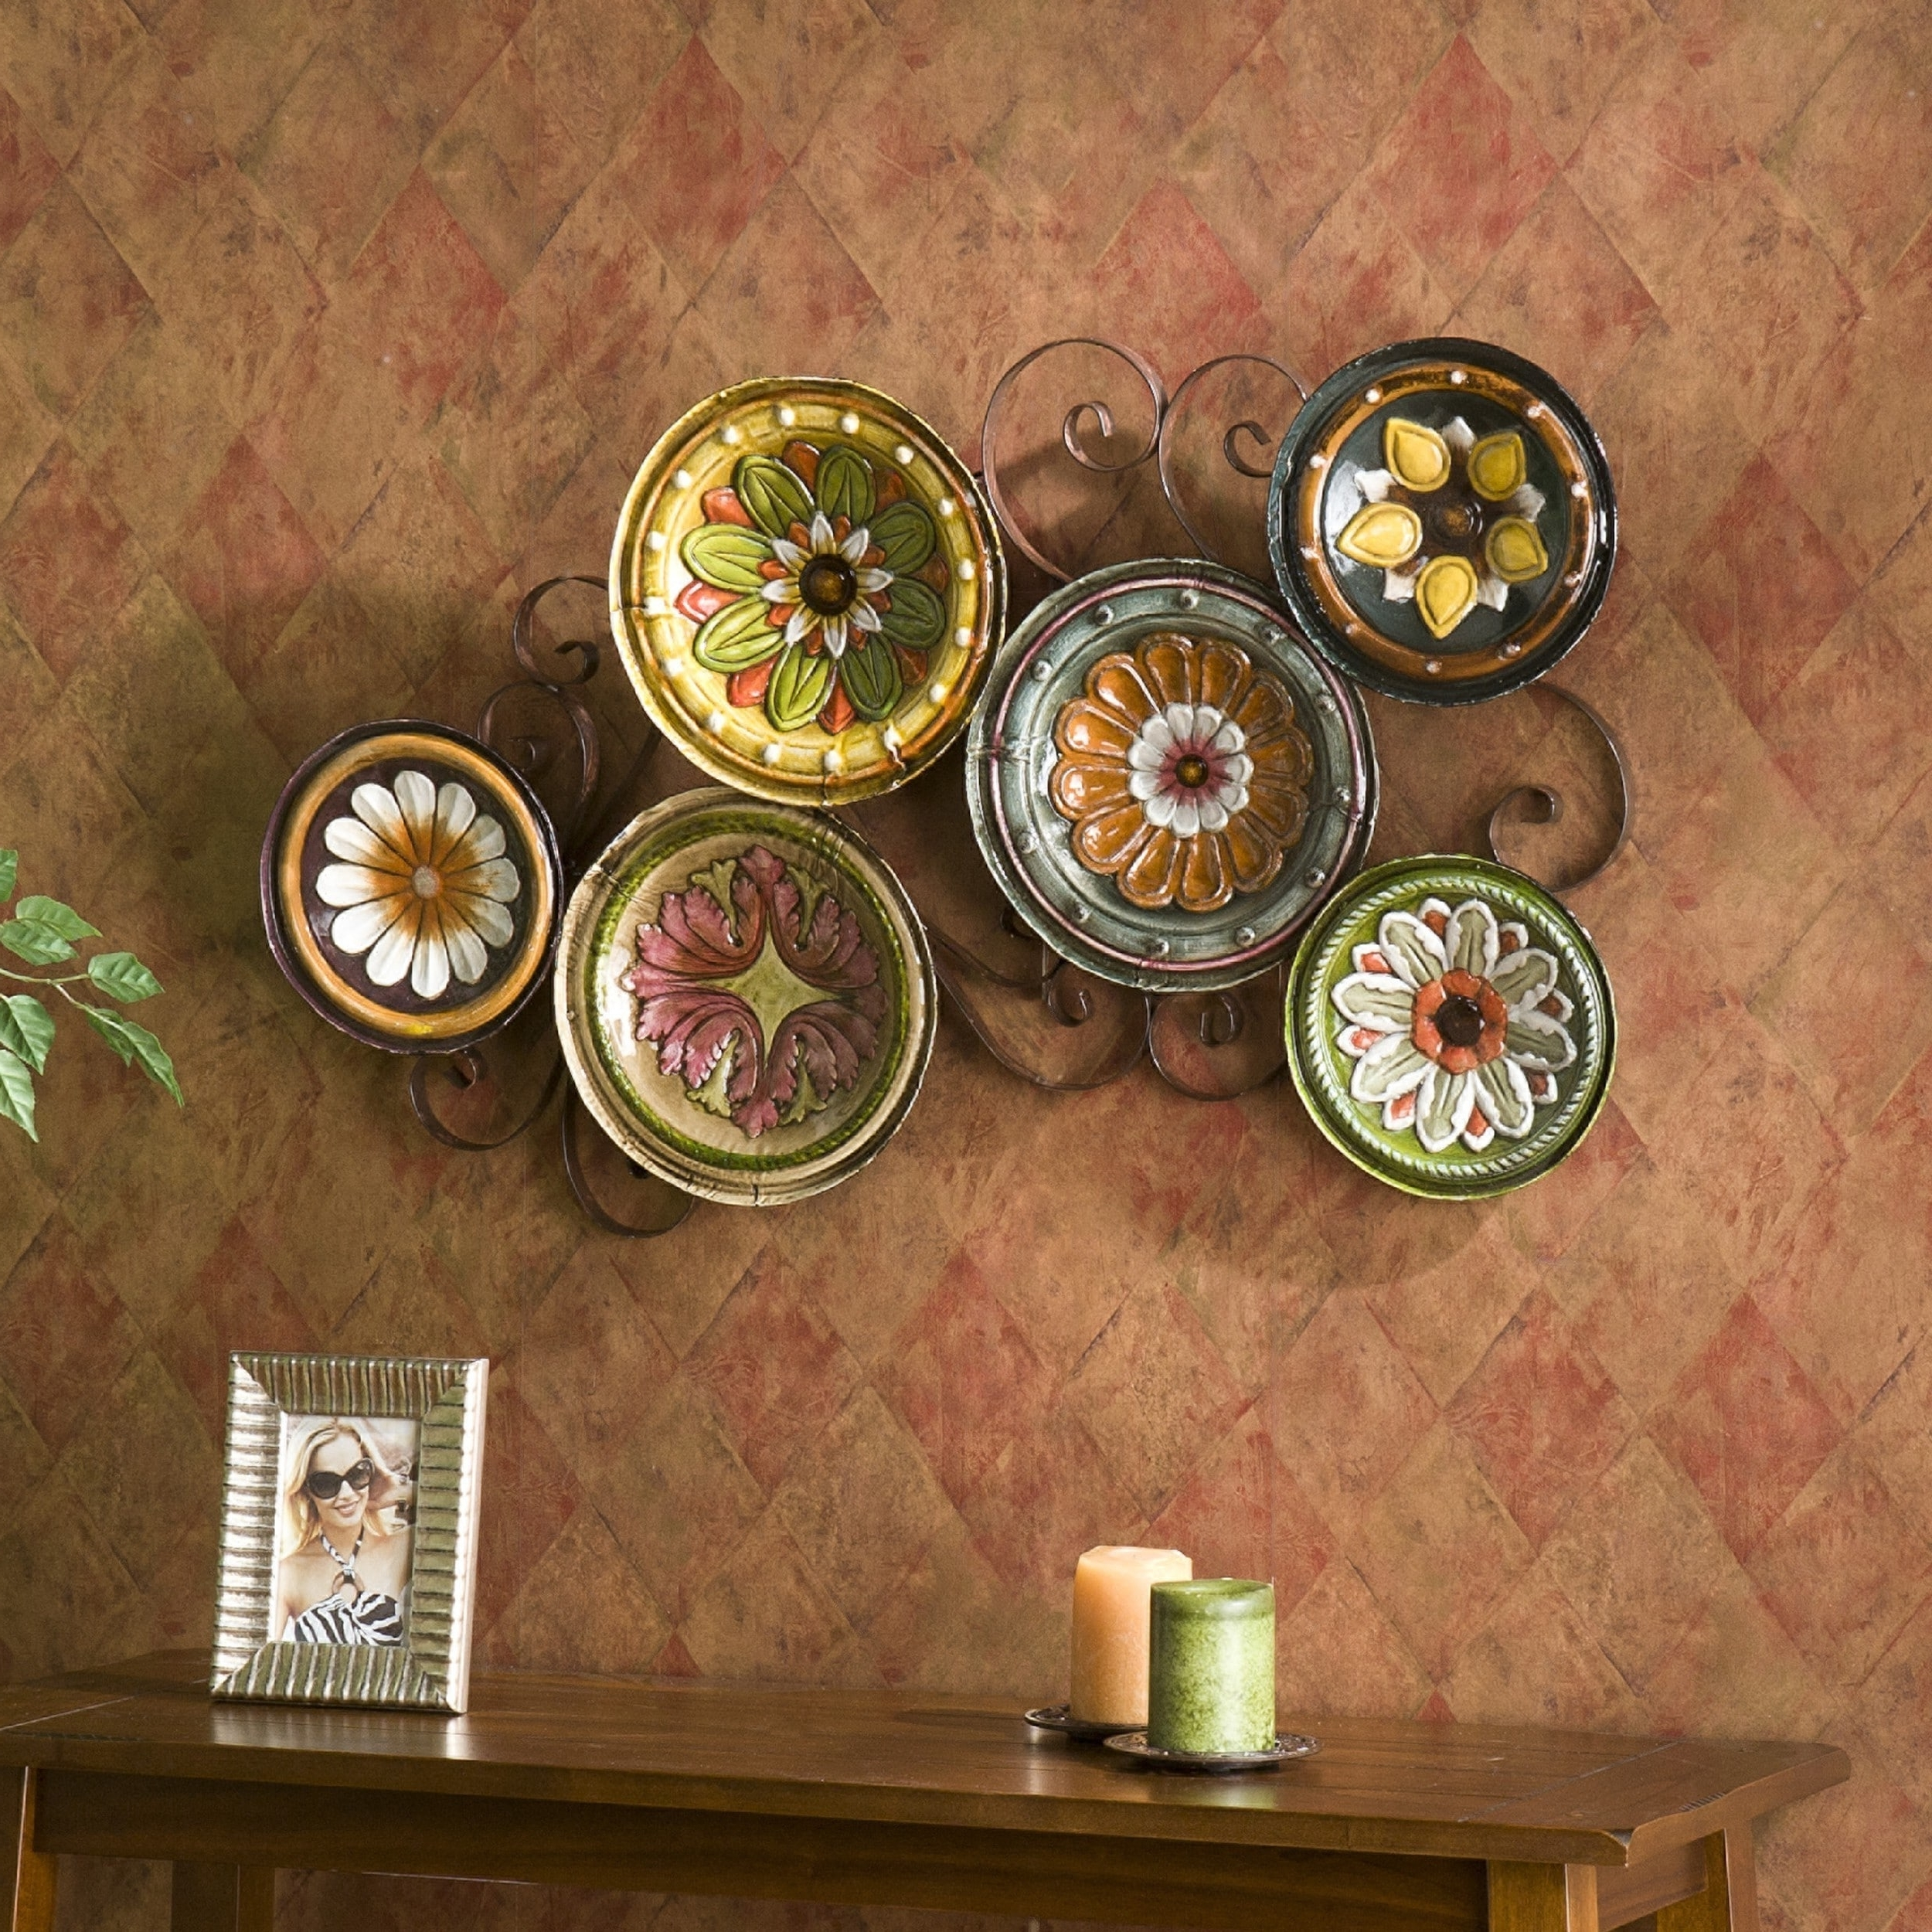 Harper Blvd Forli Scattered 6 Piece Italian Plates Wall Art Set Throughout Best And Newest Italian Wall Art (View 5 of 15)